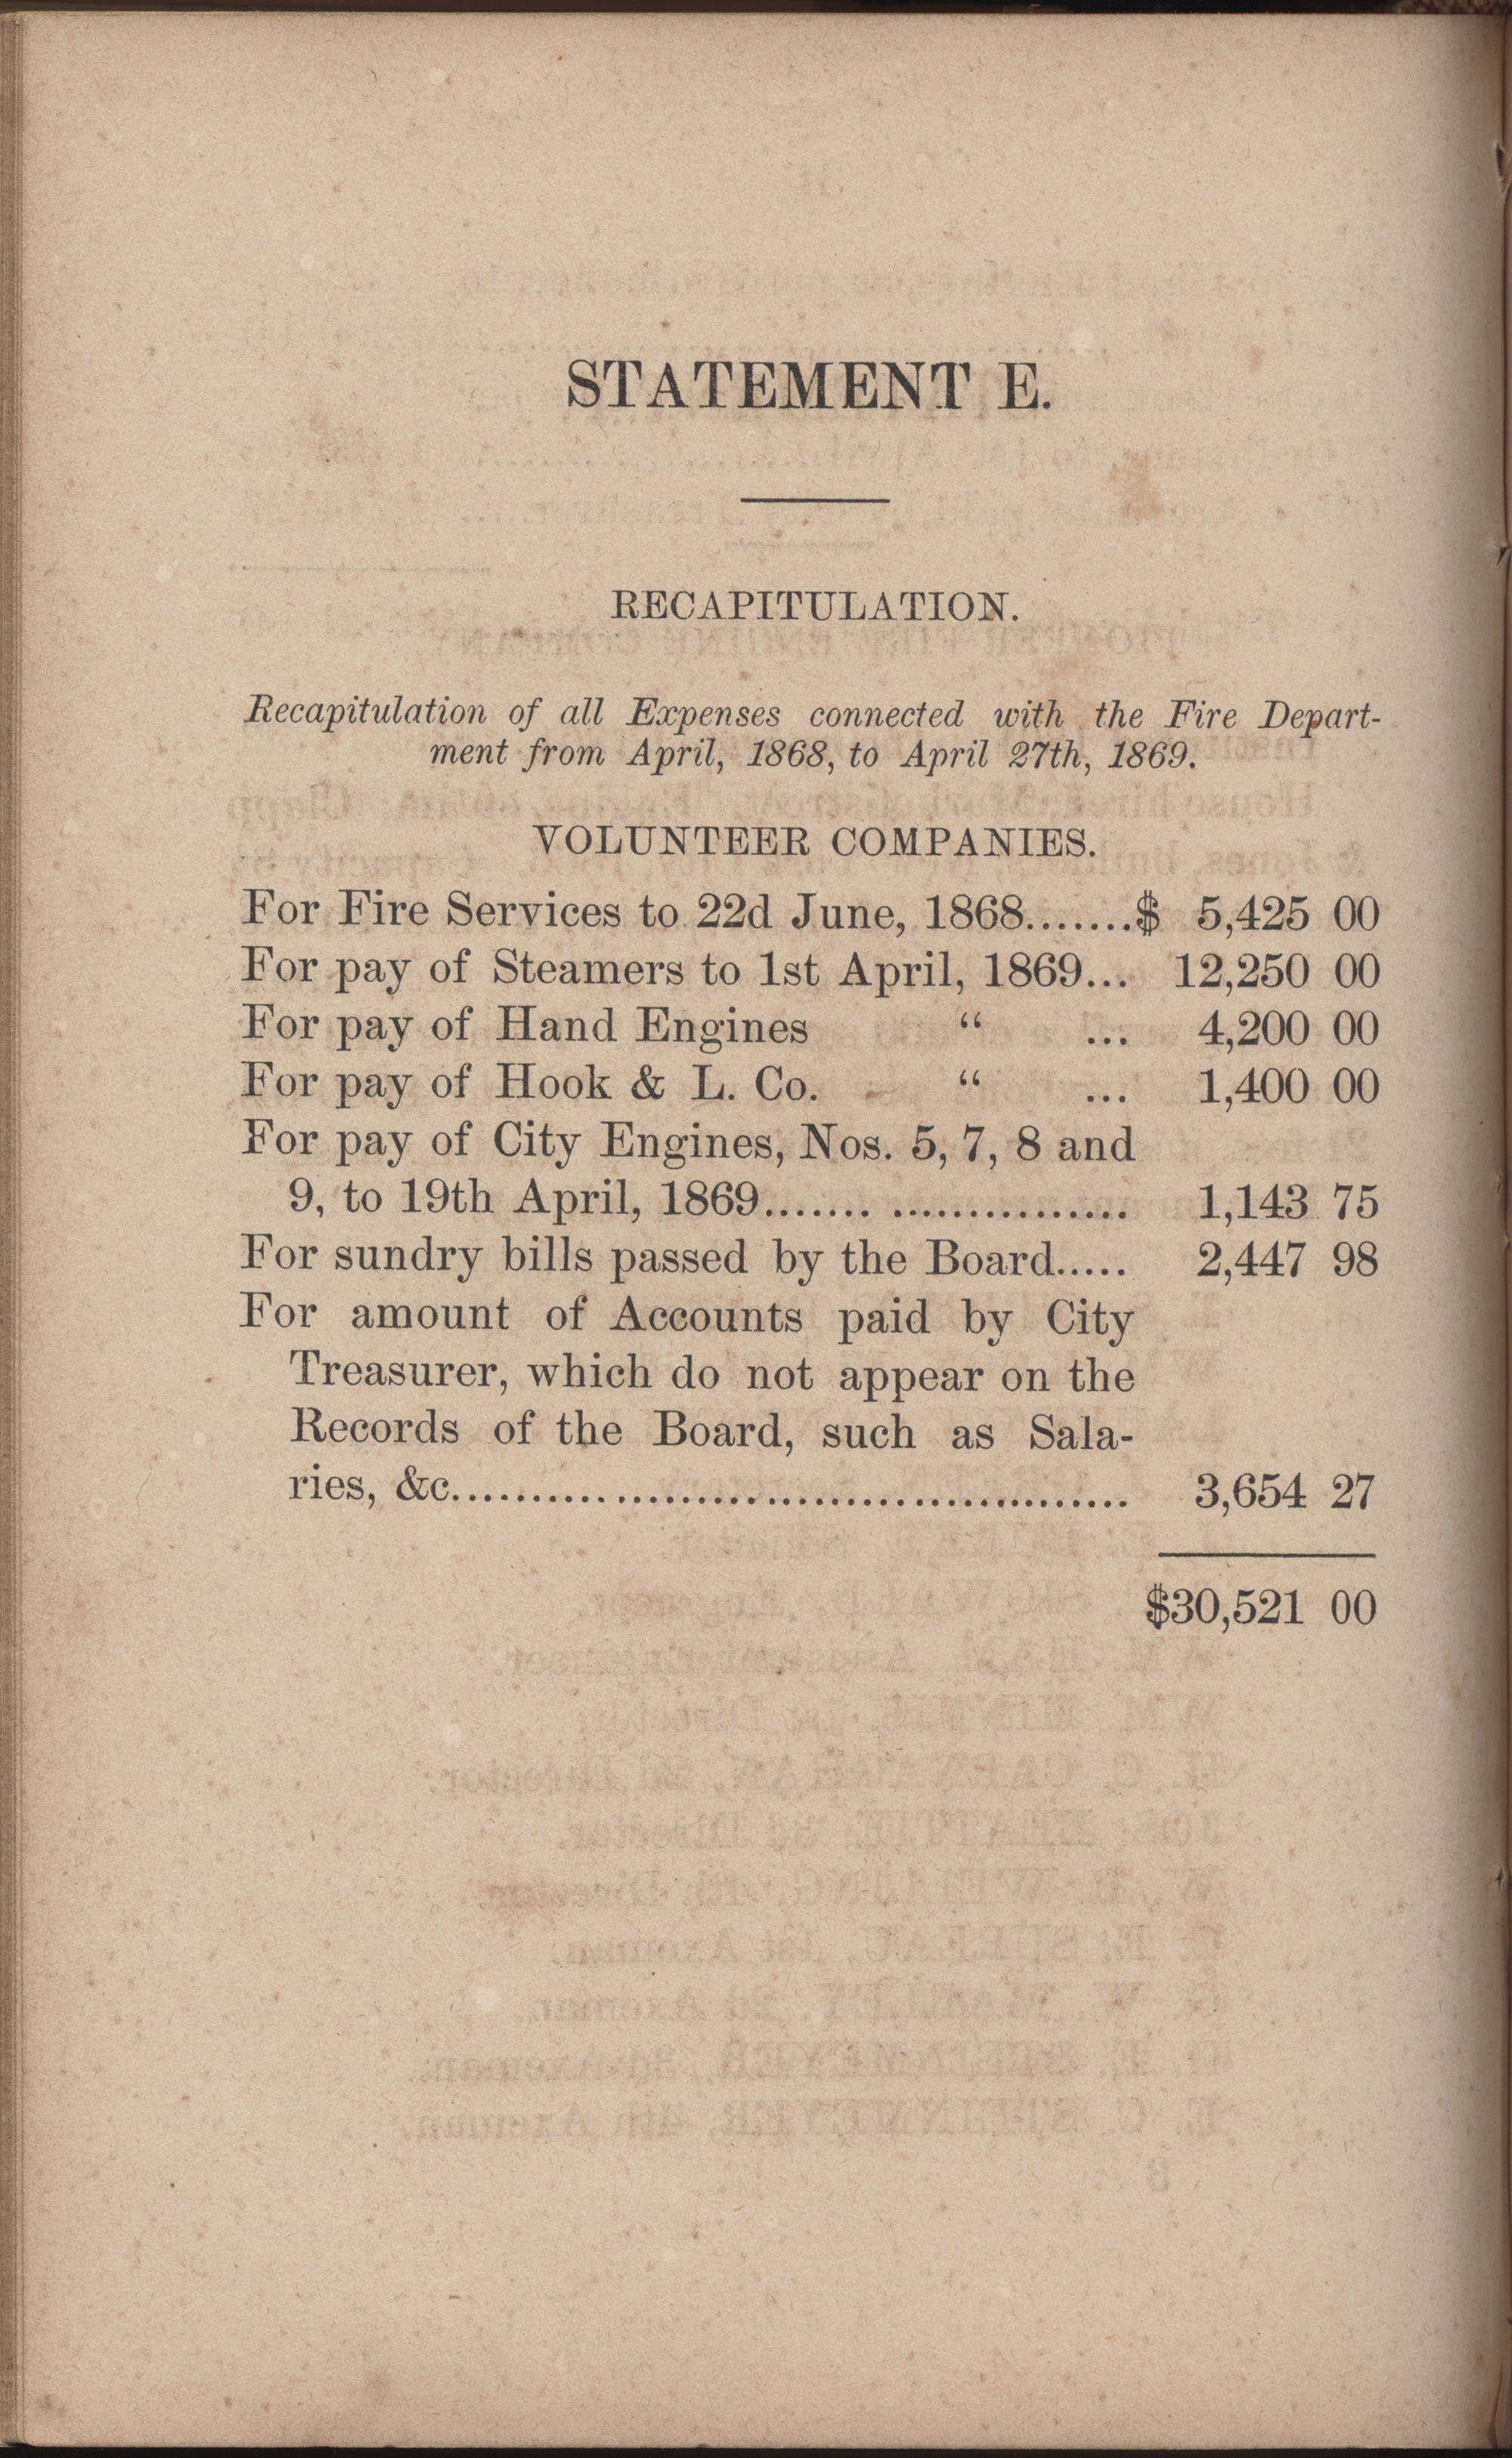 Annual Report of the Chief of the Fire Department of the City of Charleston, page 259